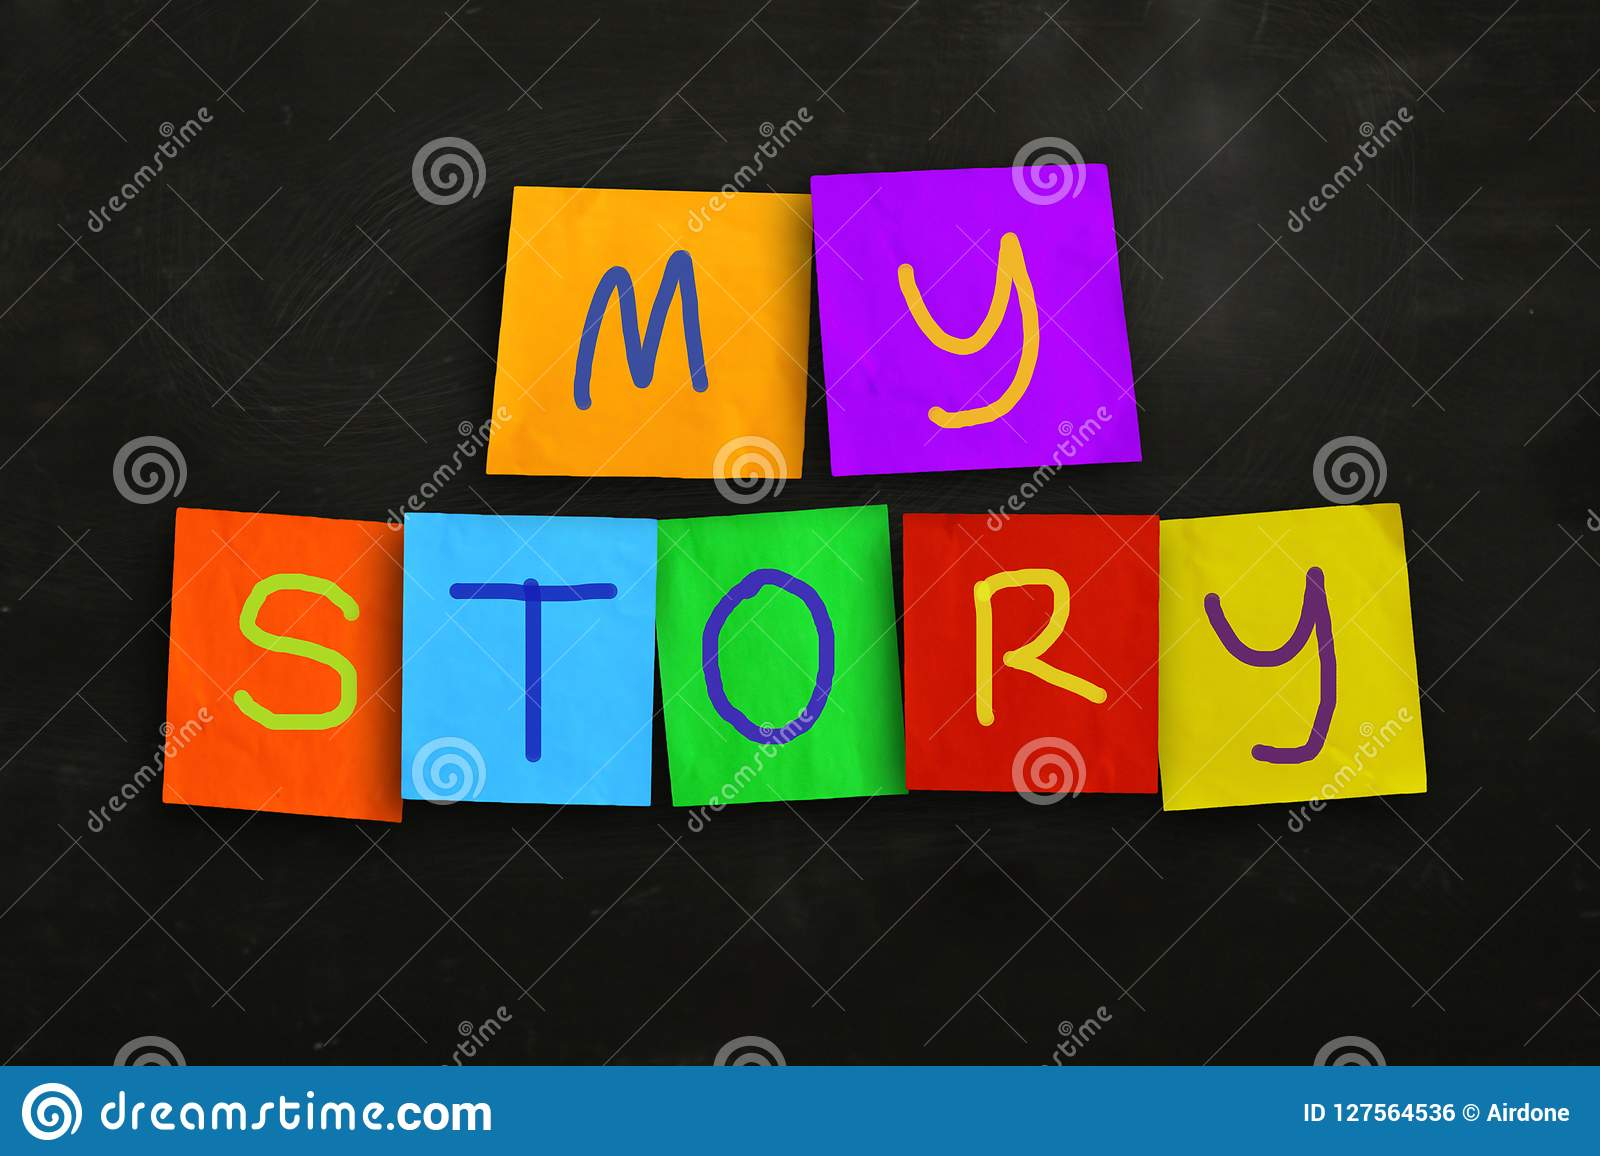 This Is My Story Motivational Inspirational Quotes Stock Photo